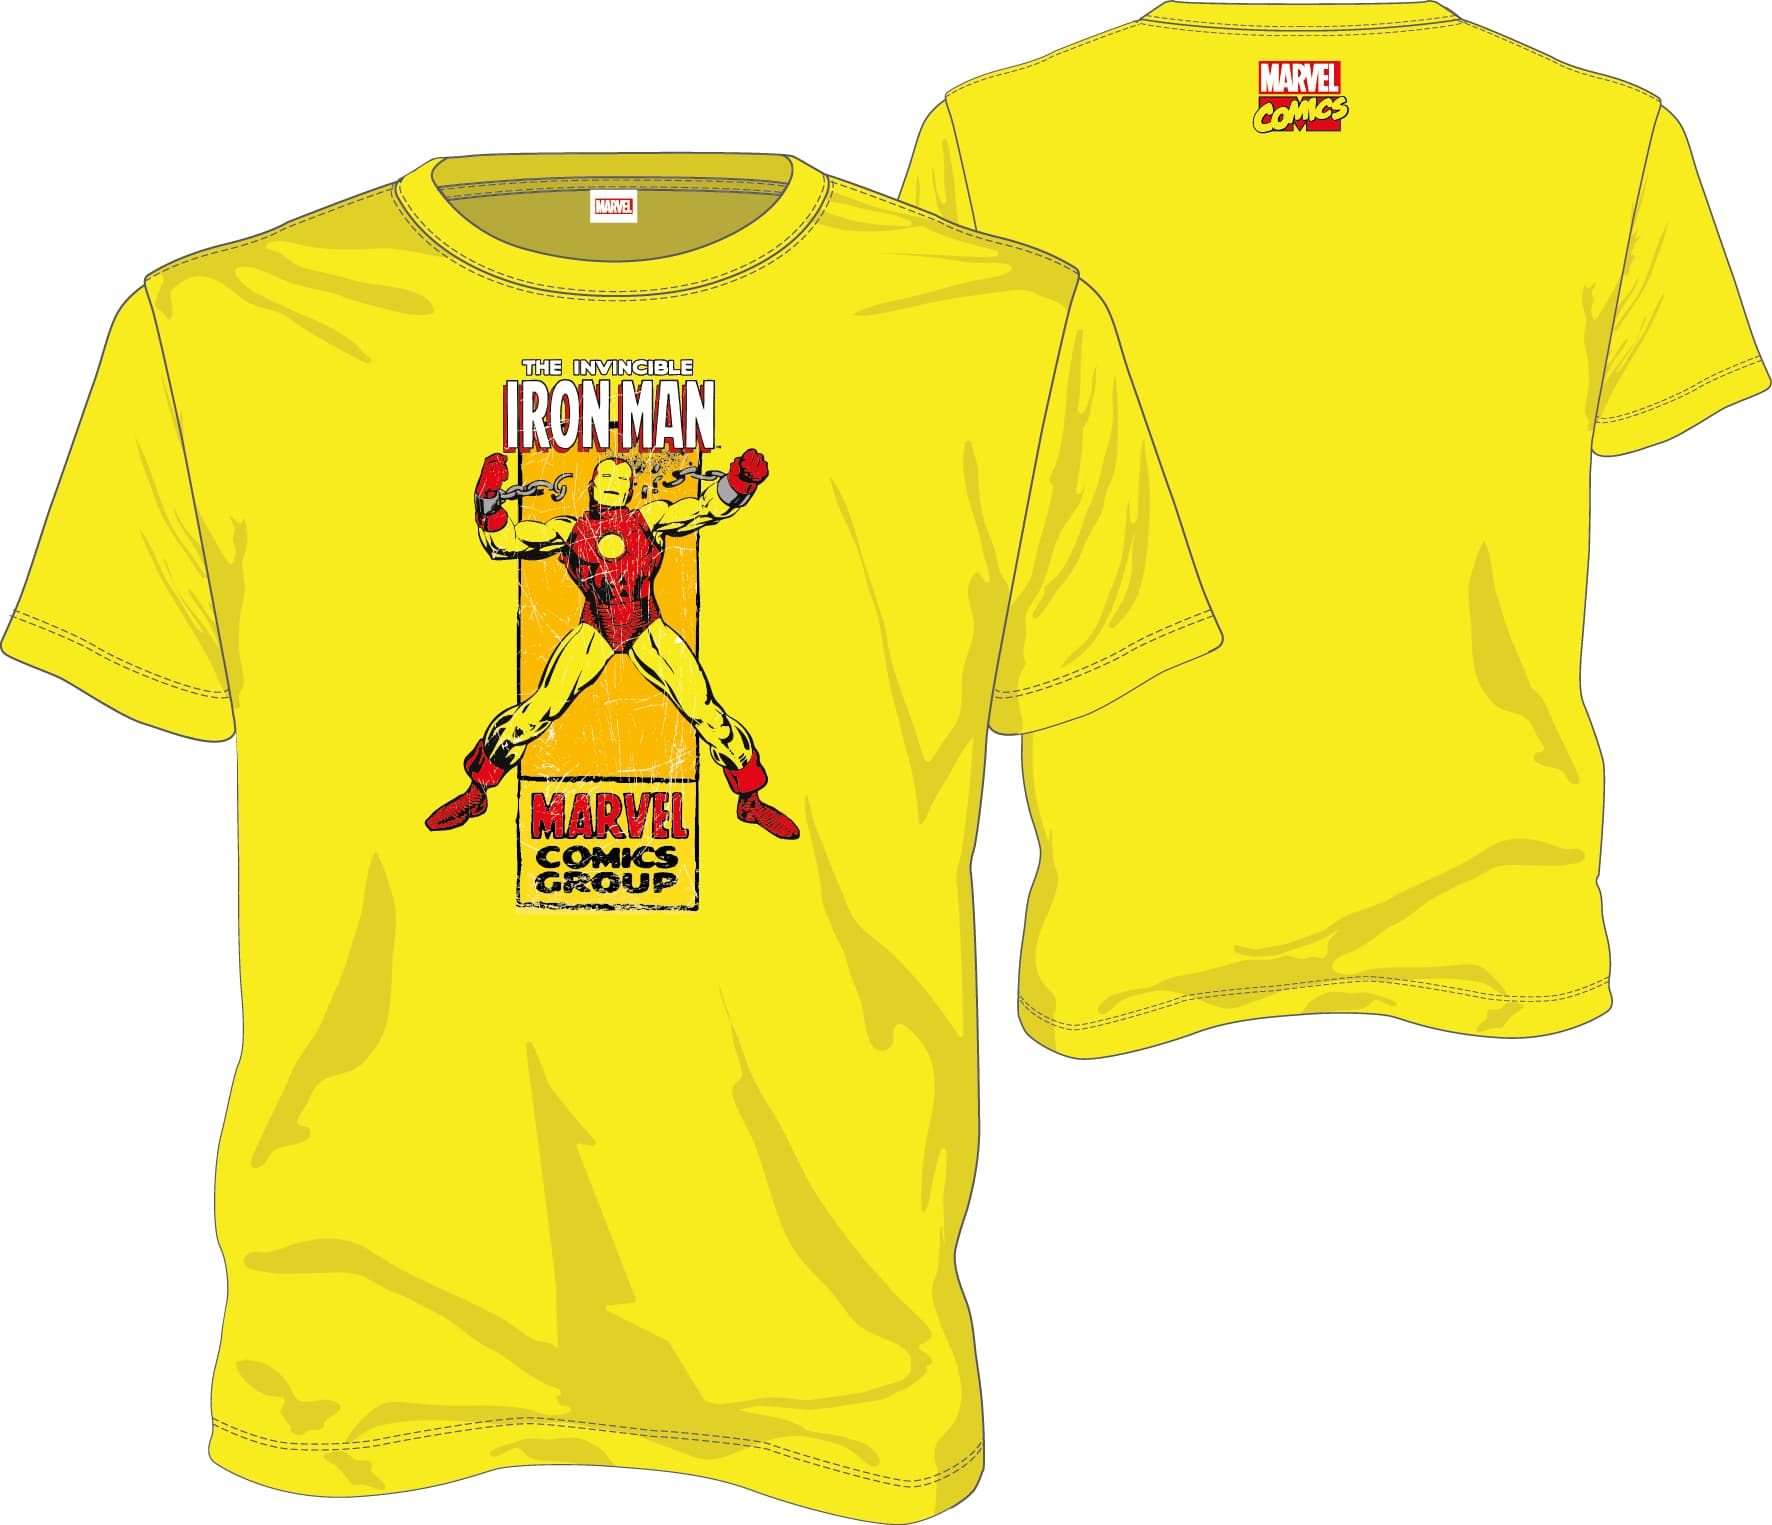 IRON MAN CAMISETA AMARILLA CHICO T-M MARVEL COMICS